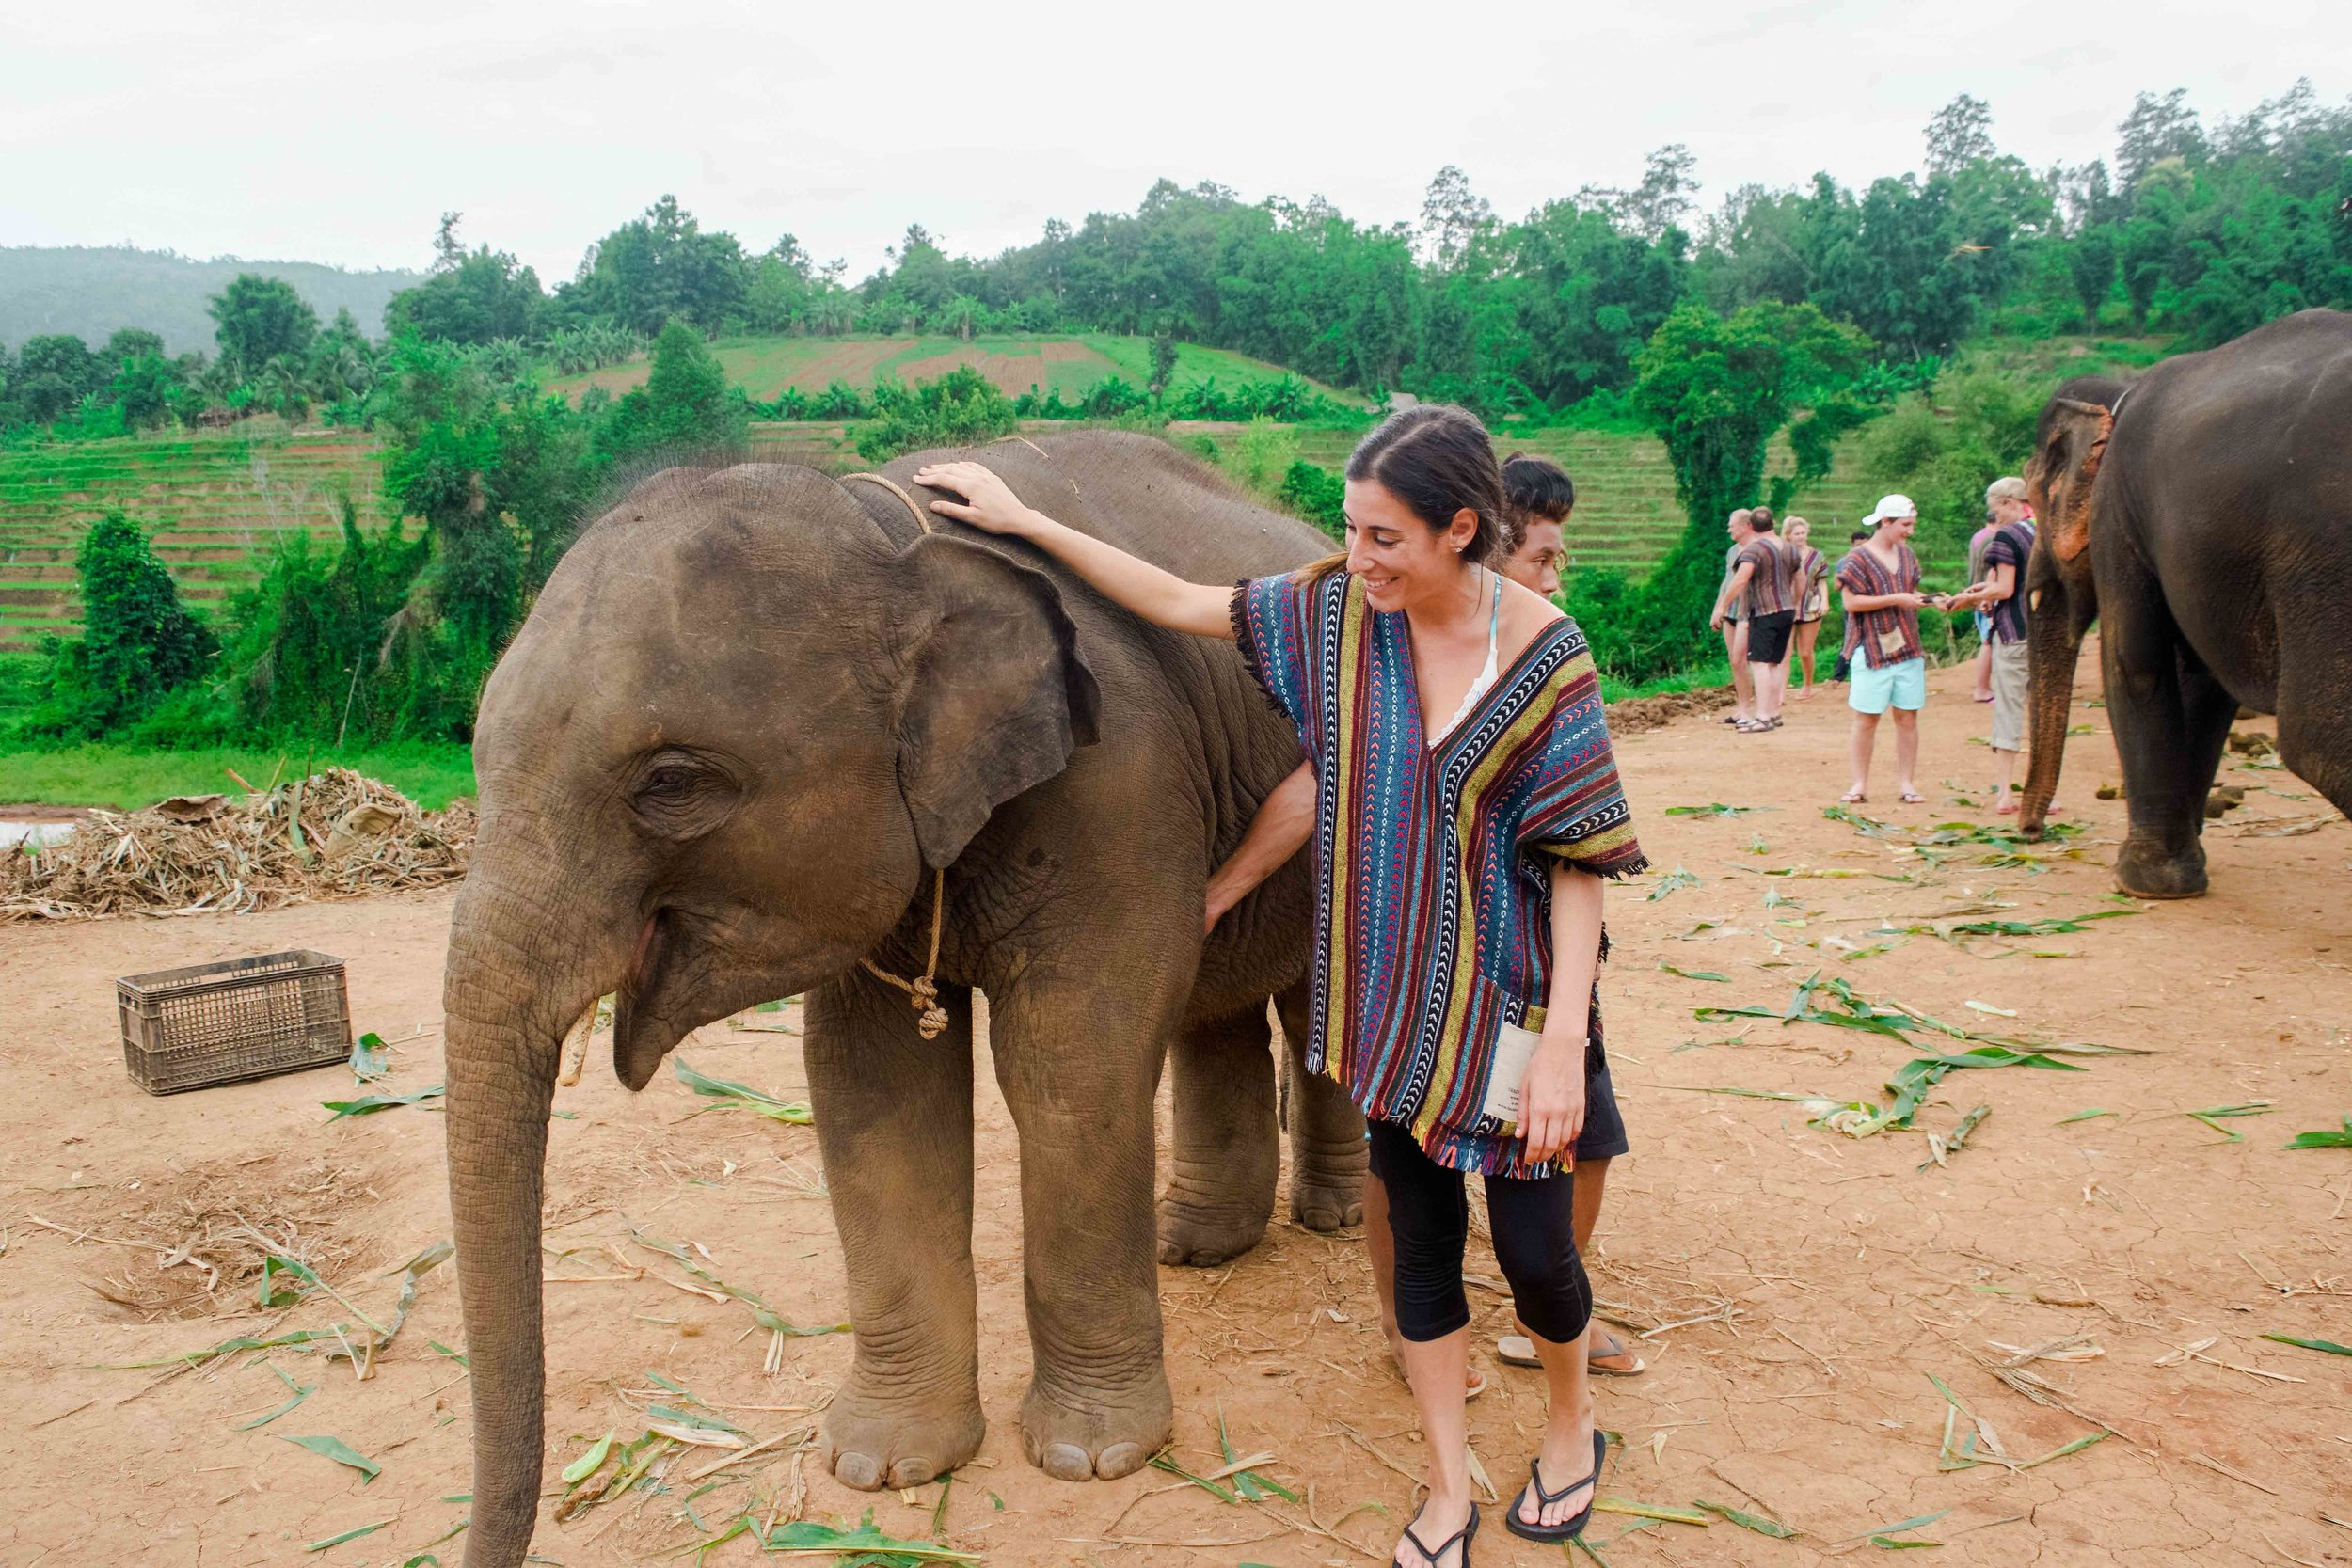 Baby elephant at Elephant Nature Park in Chiang Mai